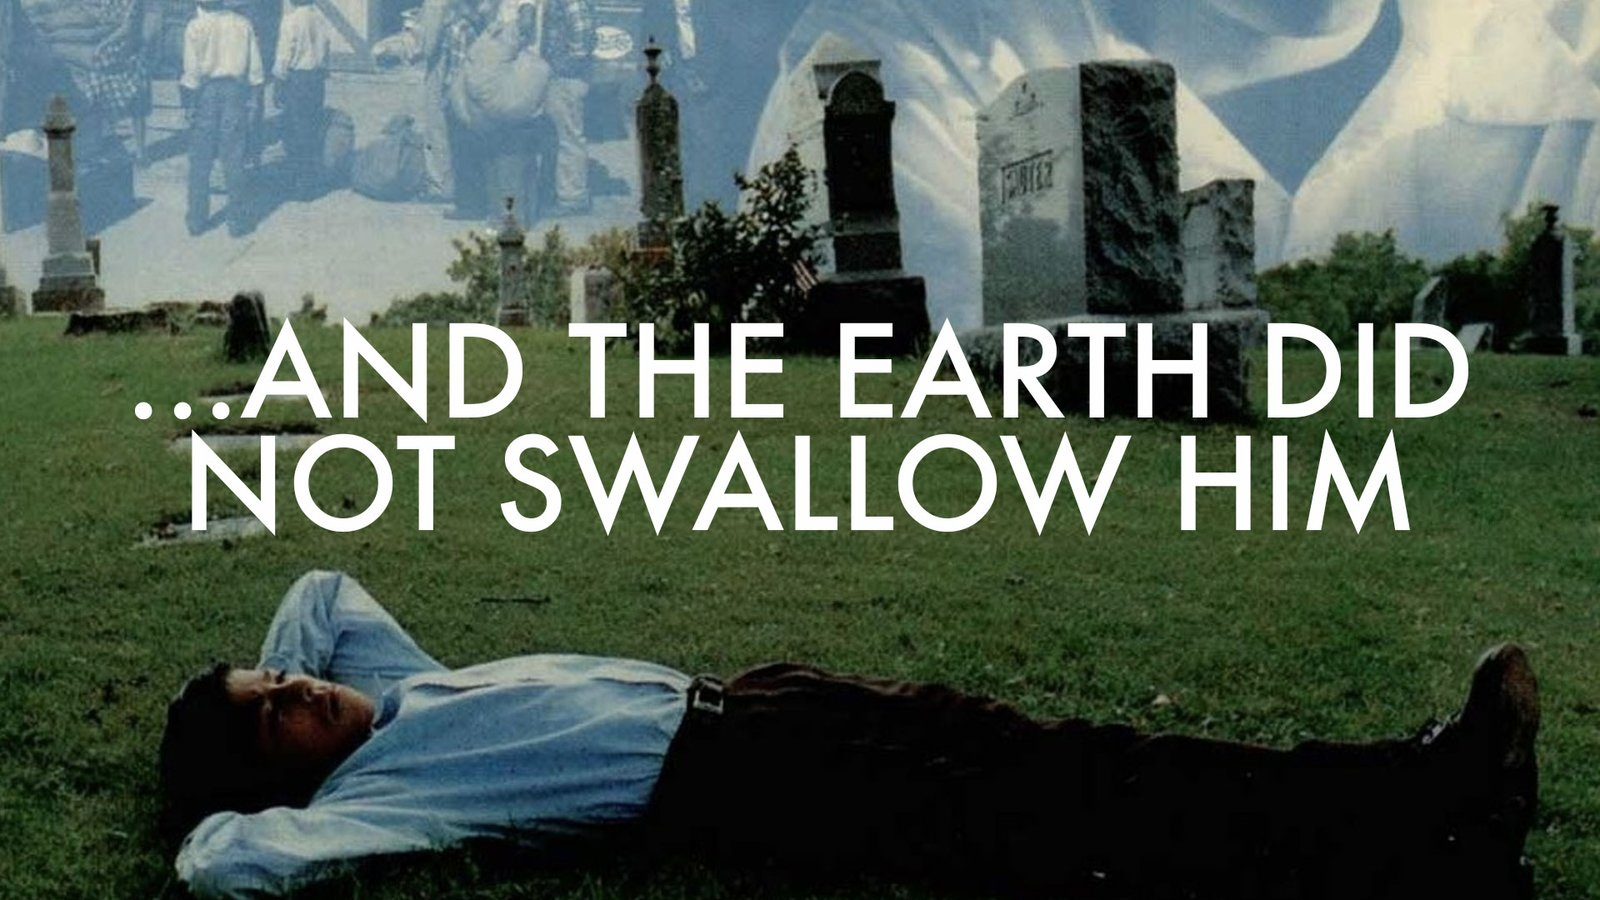 ...And The Earth Did Not Swallow Him